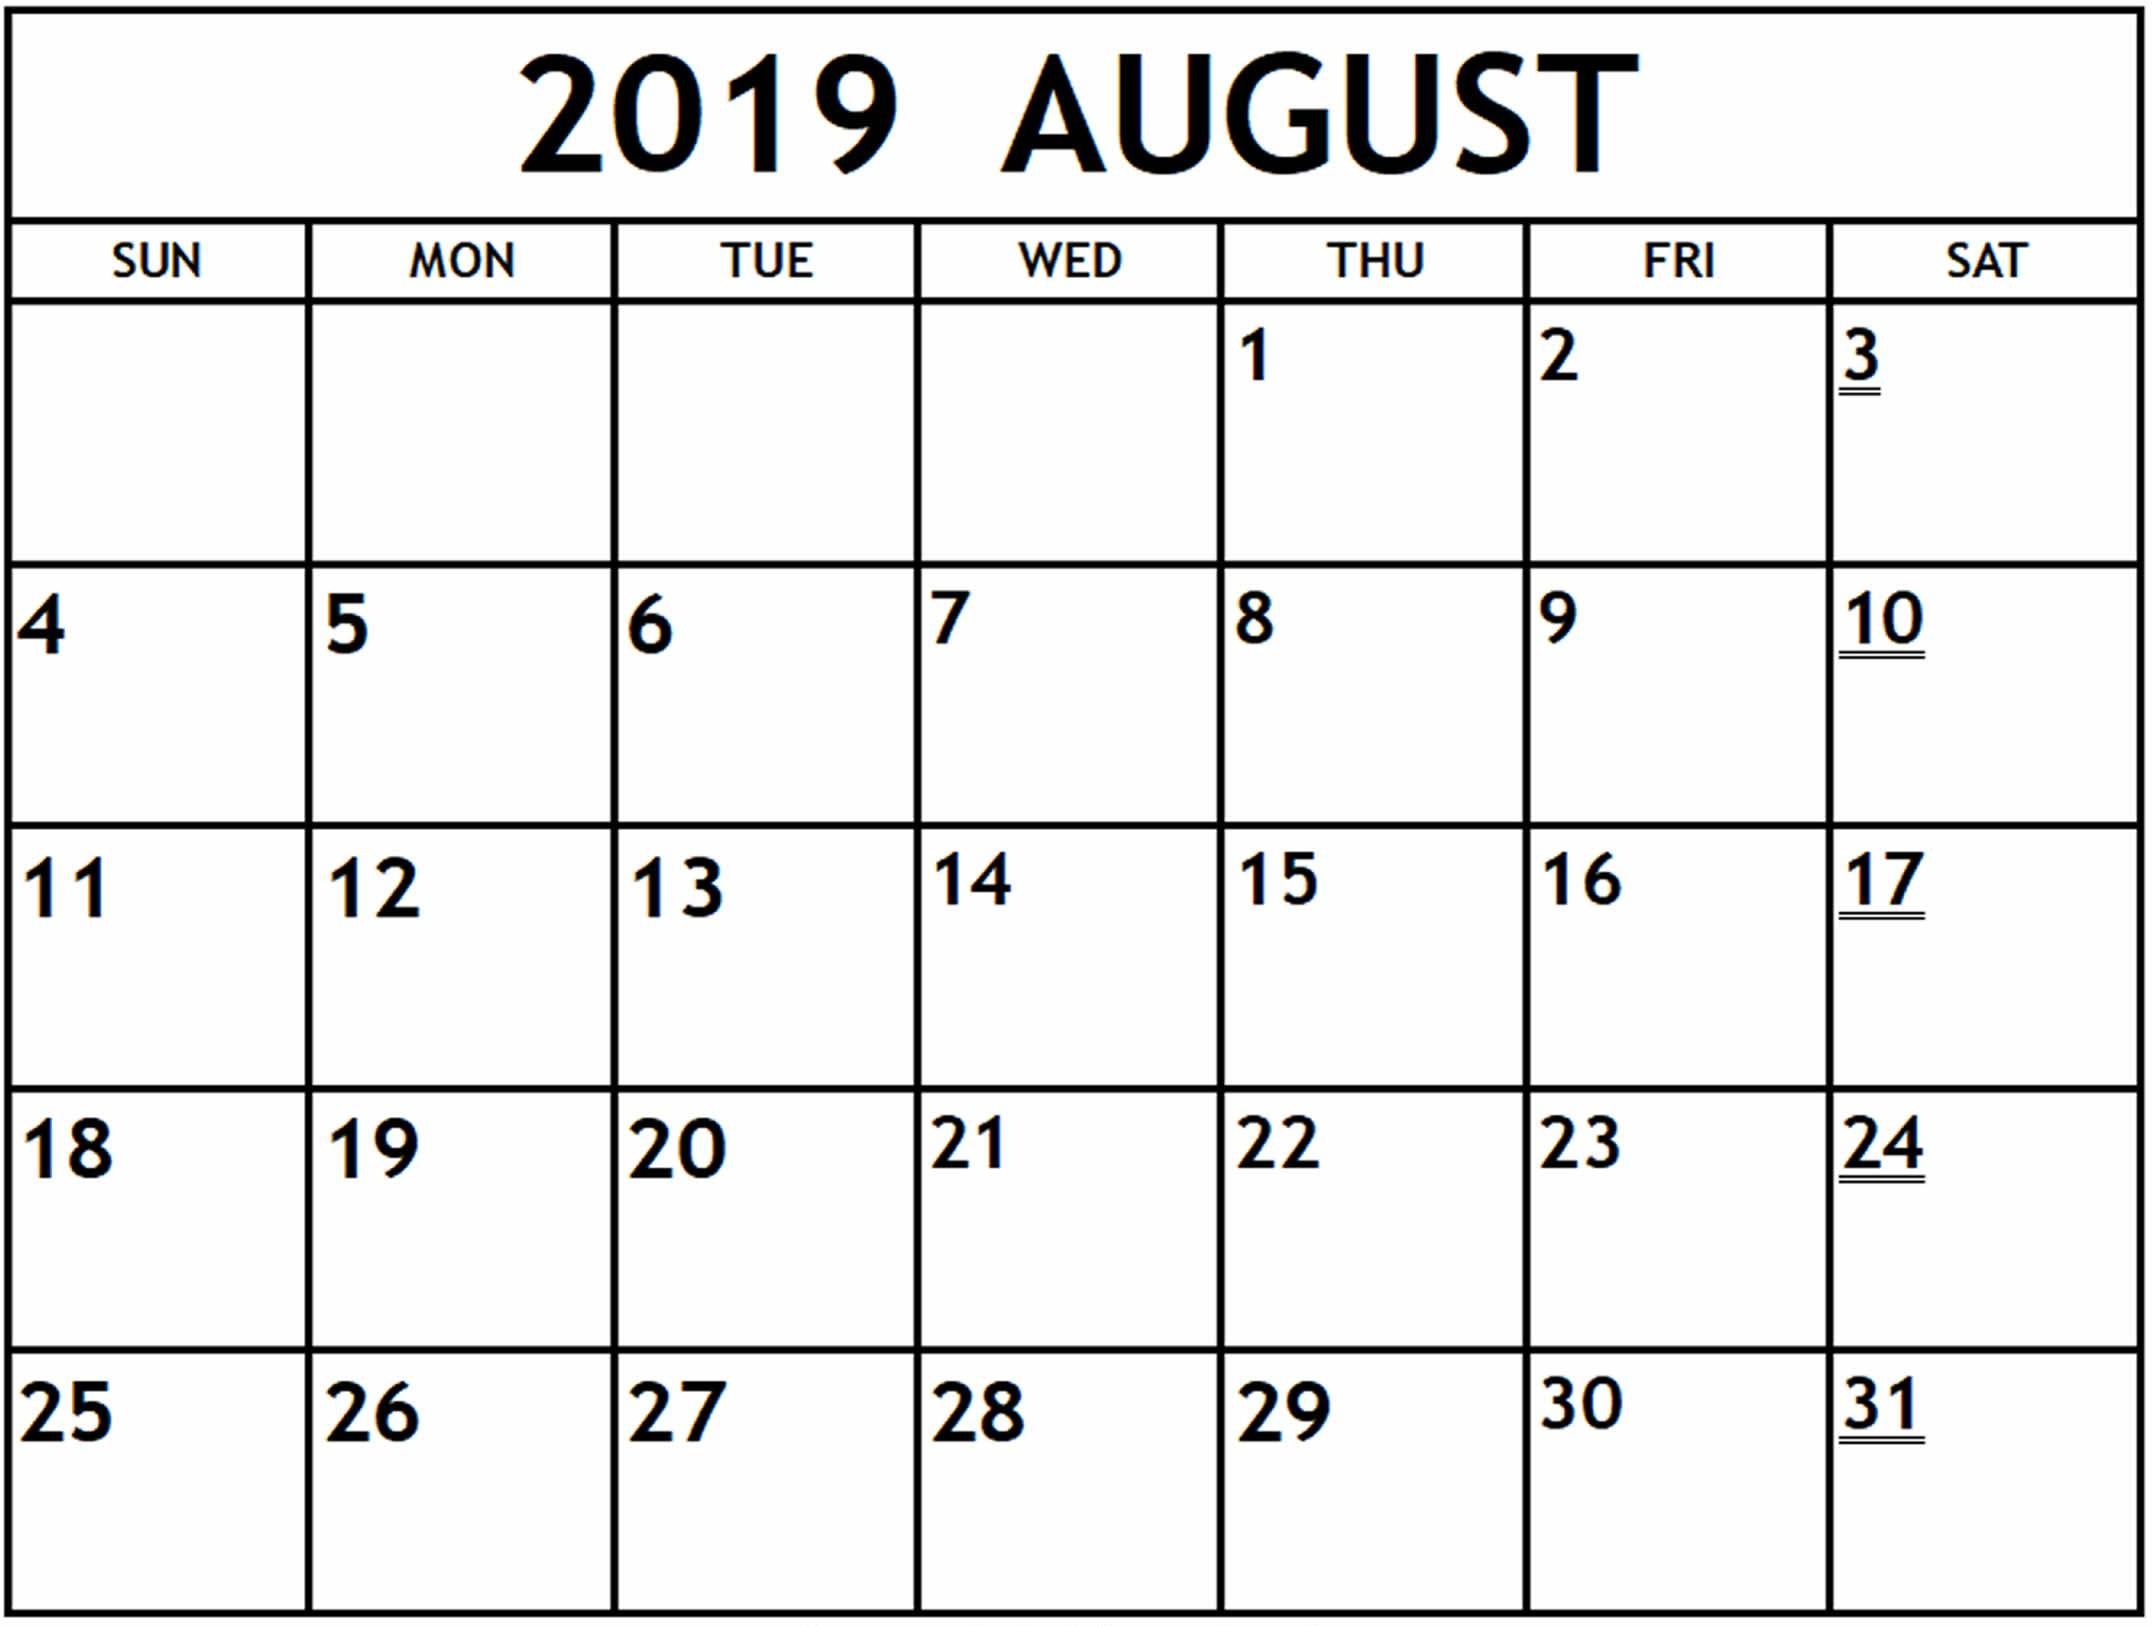 August Printable Calendar Template For 2019 – Magic Calendar 2019 for August Printable Calendar Weekly Template